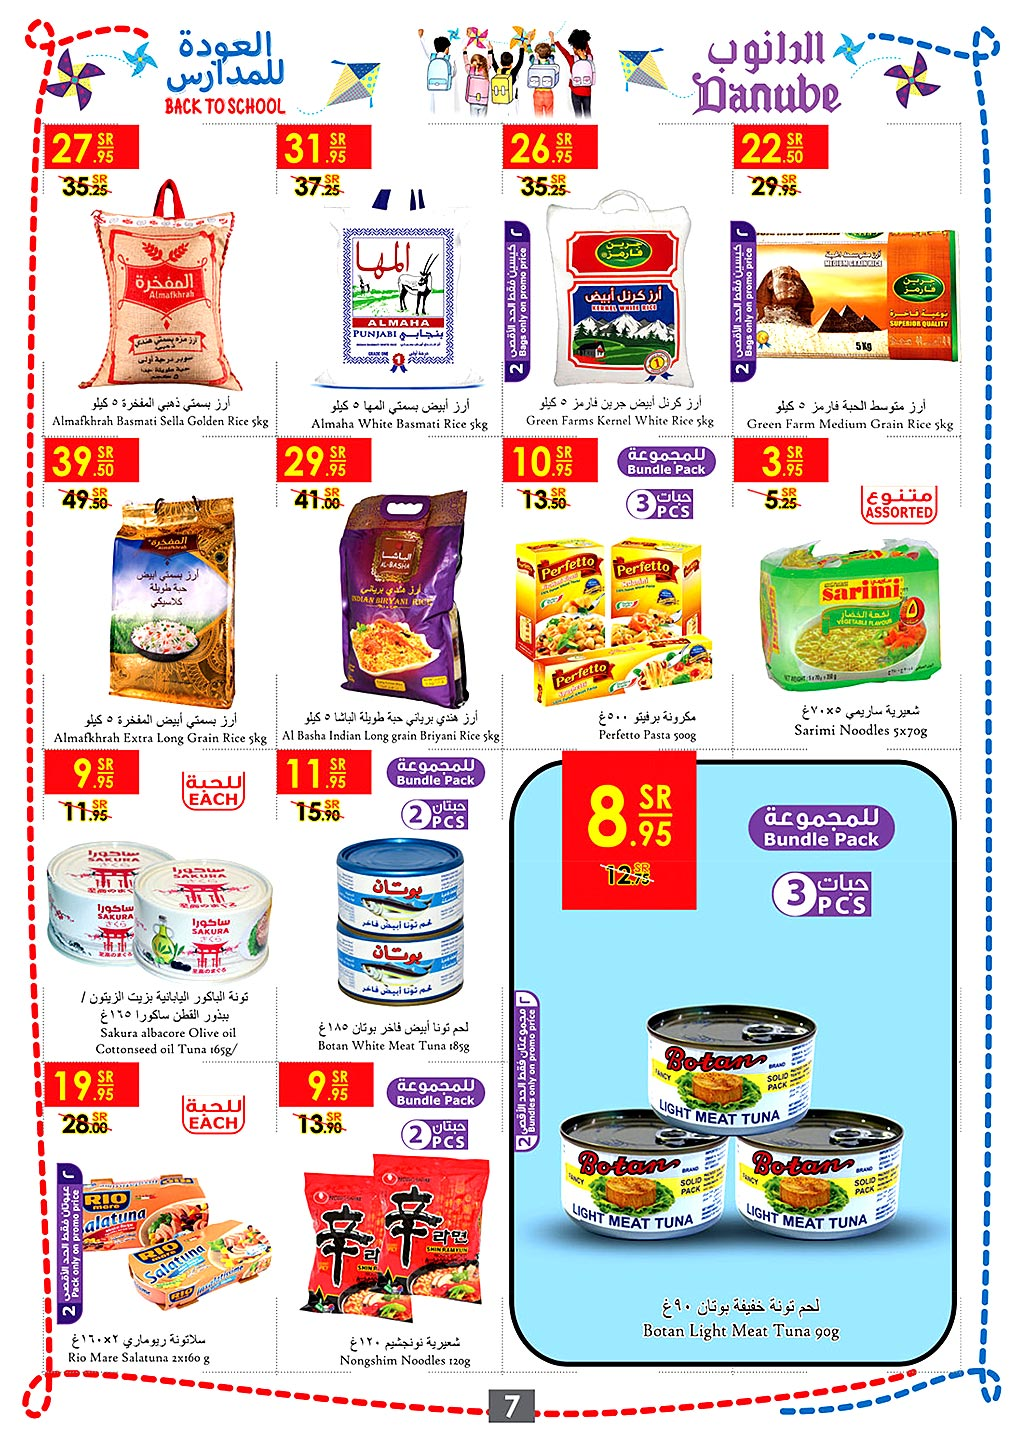 danube offers from 21aug to 28aug 2019 page number 7 عروض الدانوب من 21 أغسطس حتى 28 أغسطس 2019 صفحة رقم 7